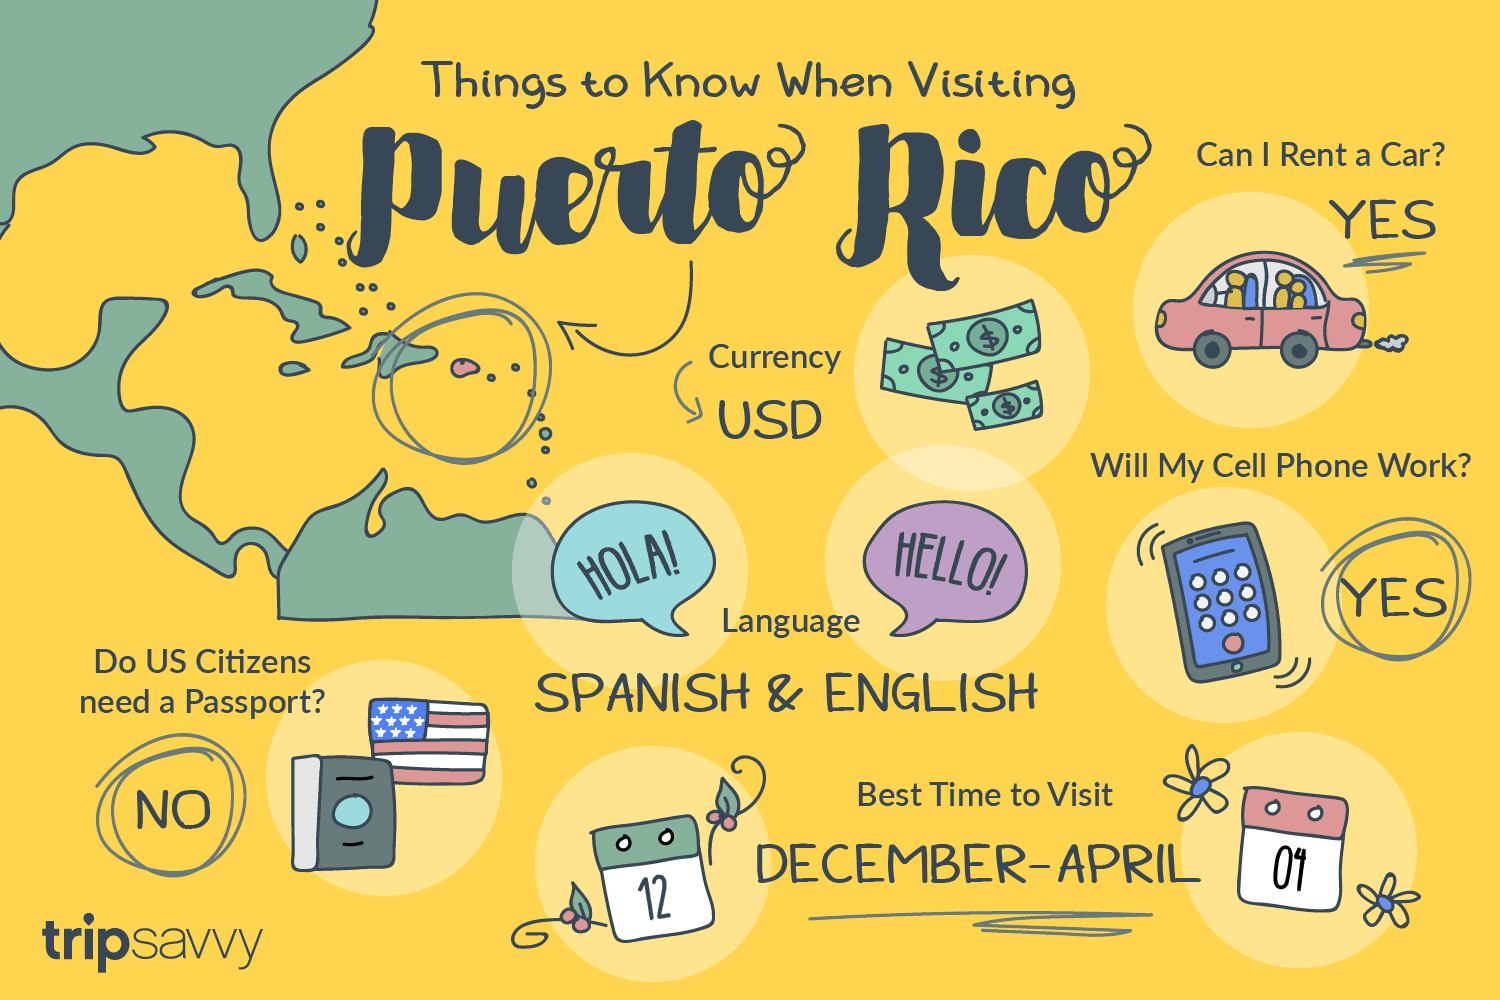 Guide to Visiting Puerto Rico